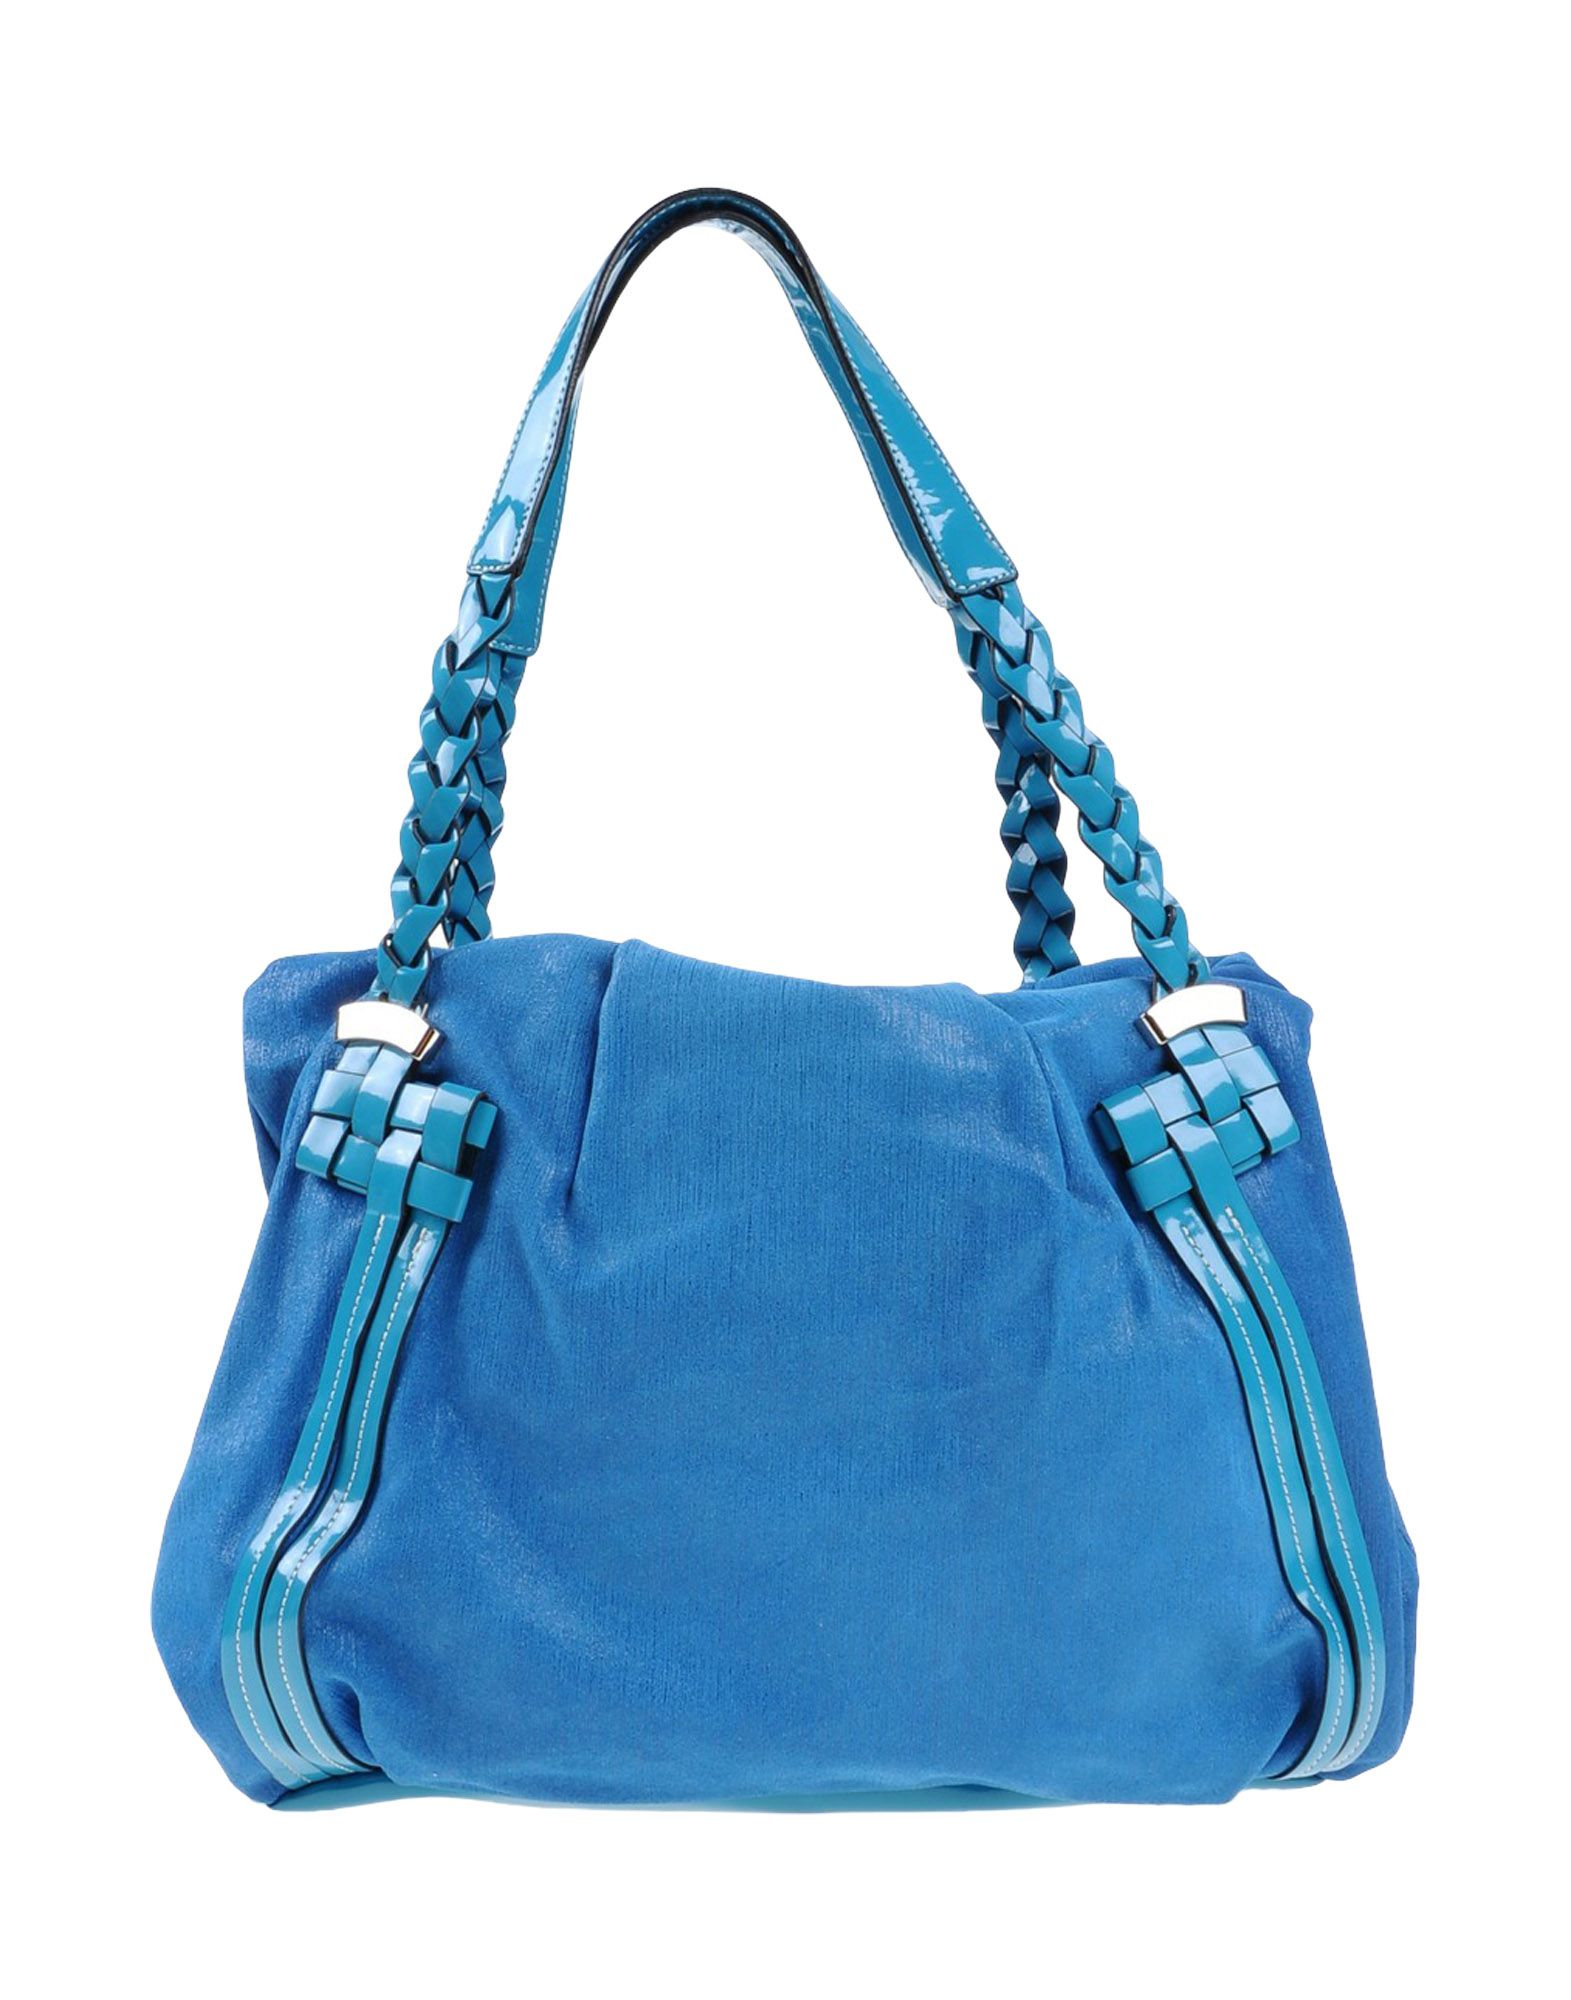 Crosia Handbags Latest Design : cromia women s blue handbag $ 239 129 os size guide add to bag buy now ...